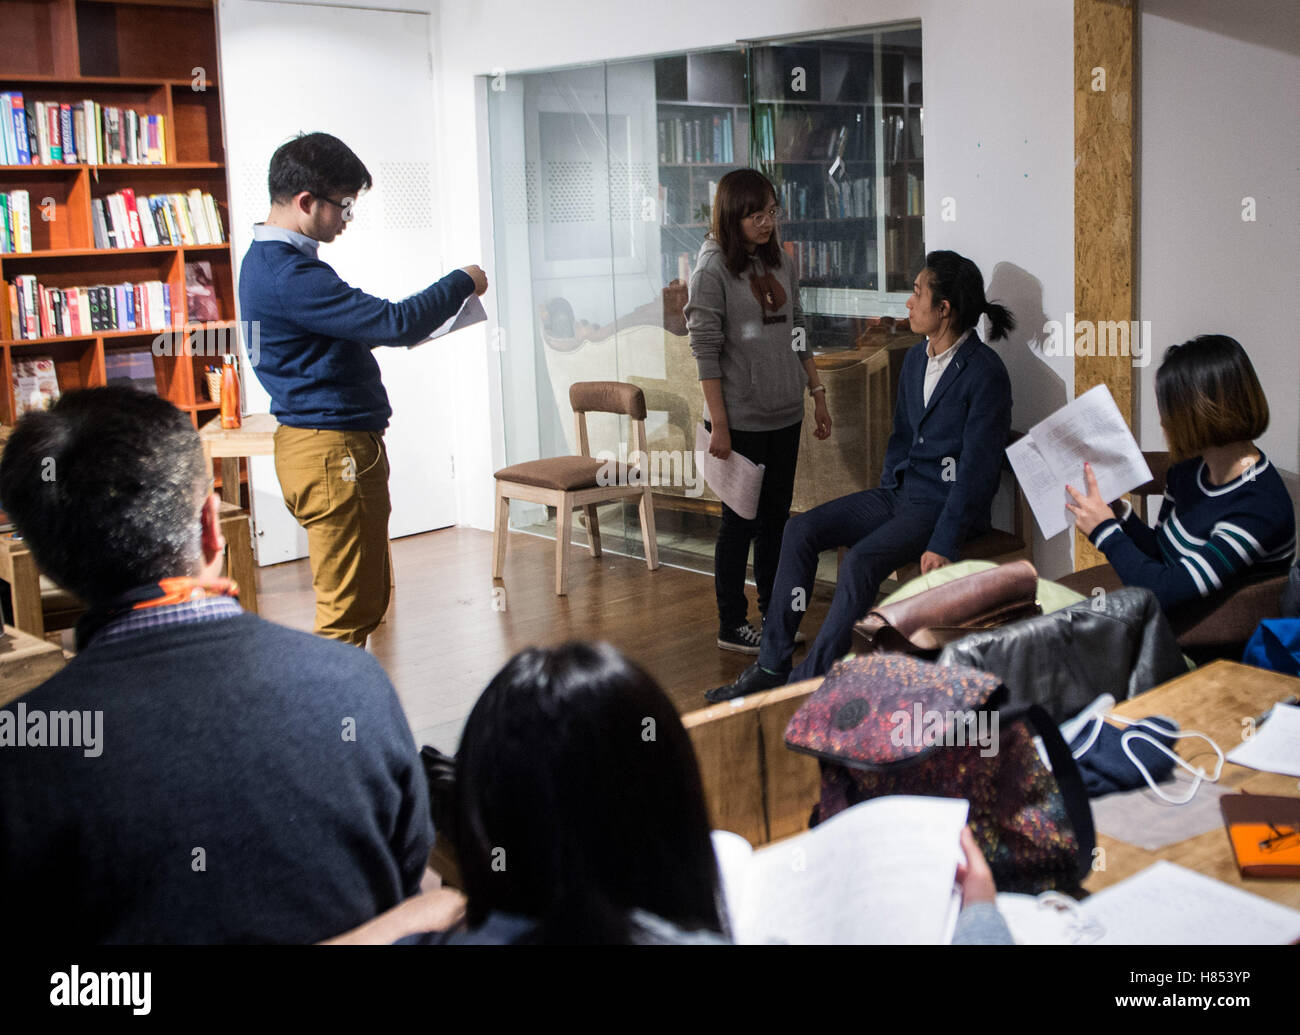 Beijing, China. 4th Nov, 2016. Young people rehearse drama at the 706 Youth Space in Beijing, capital of China, - Stock Image